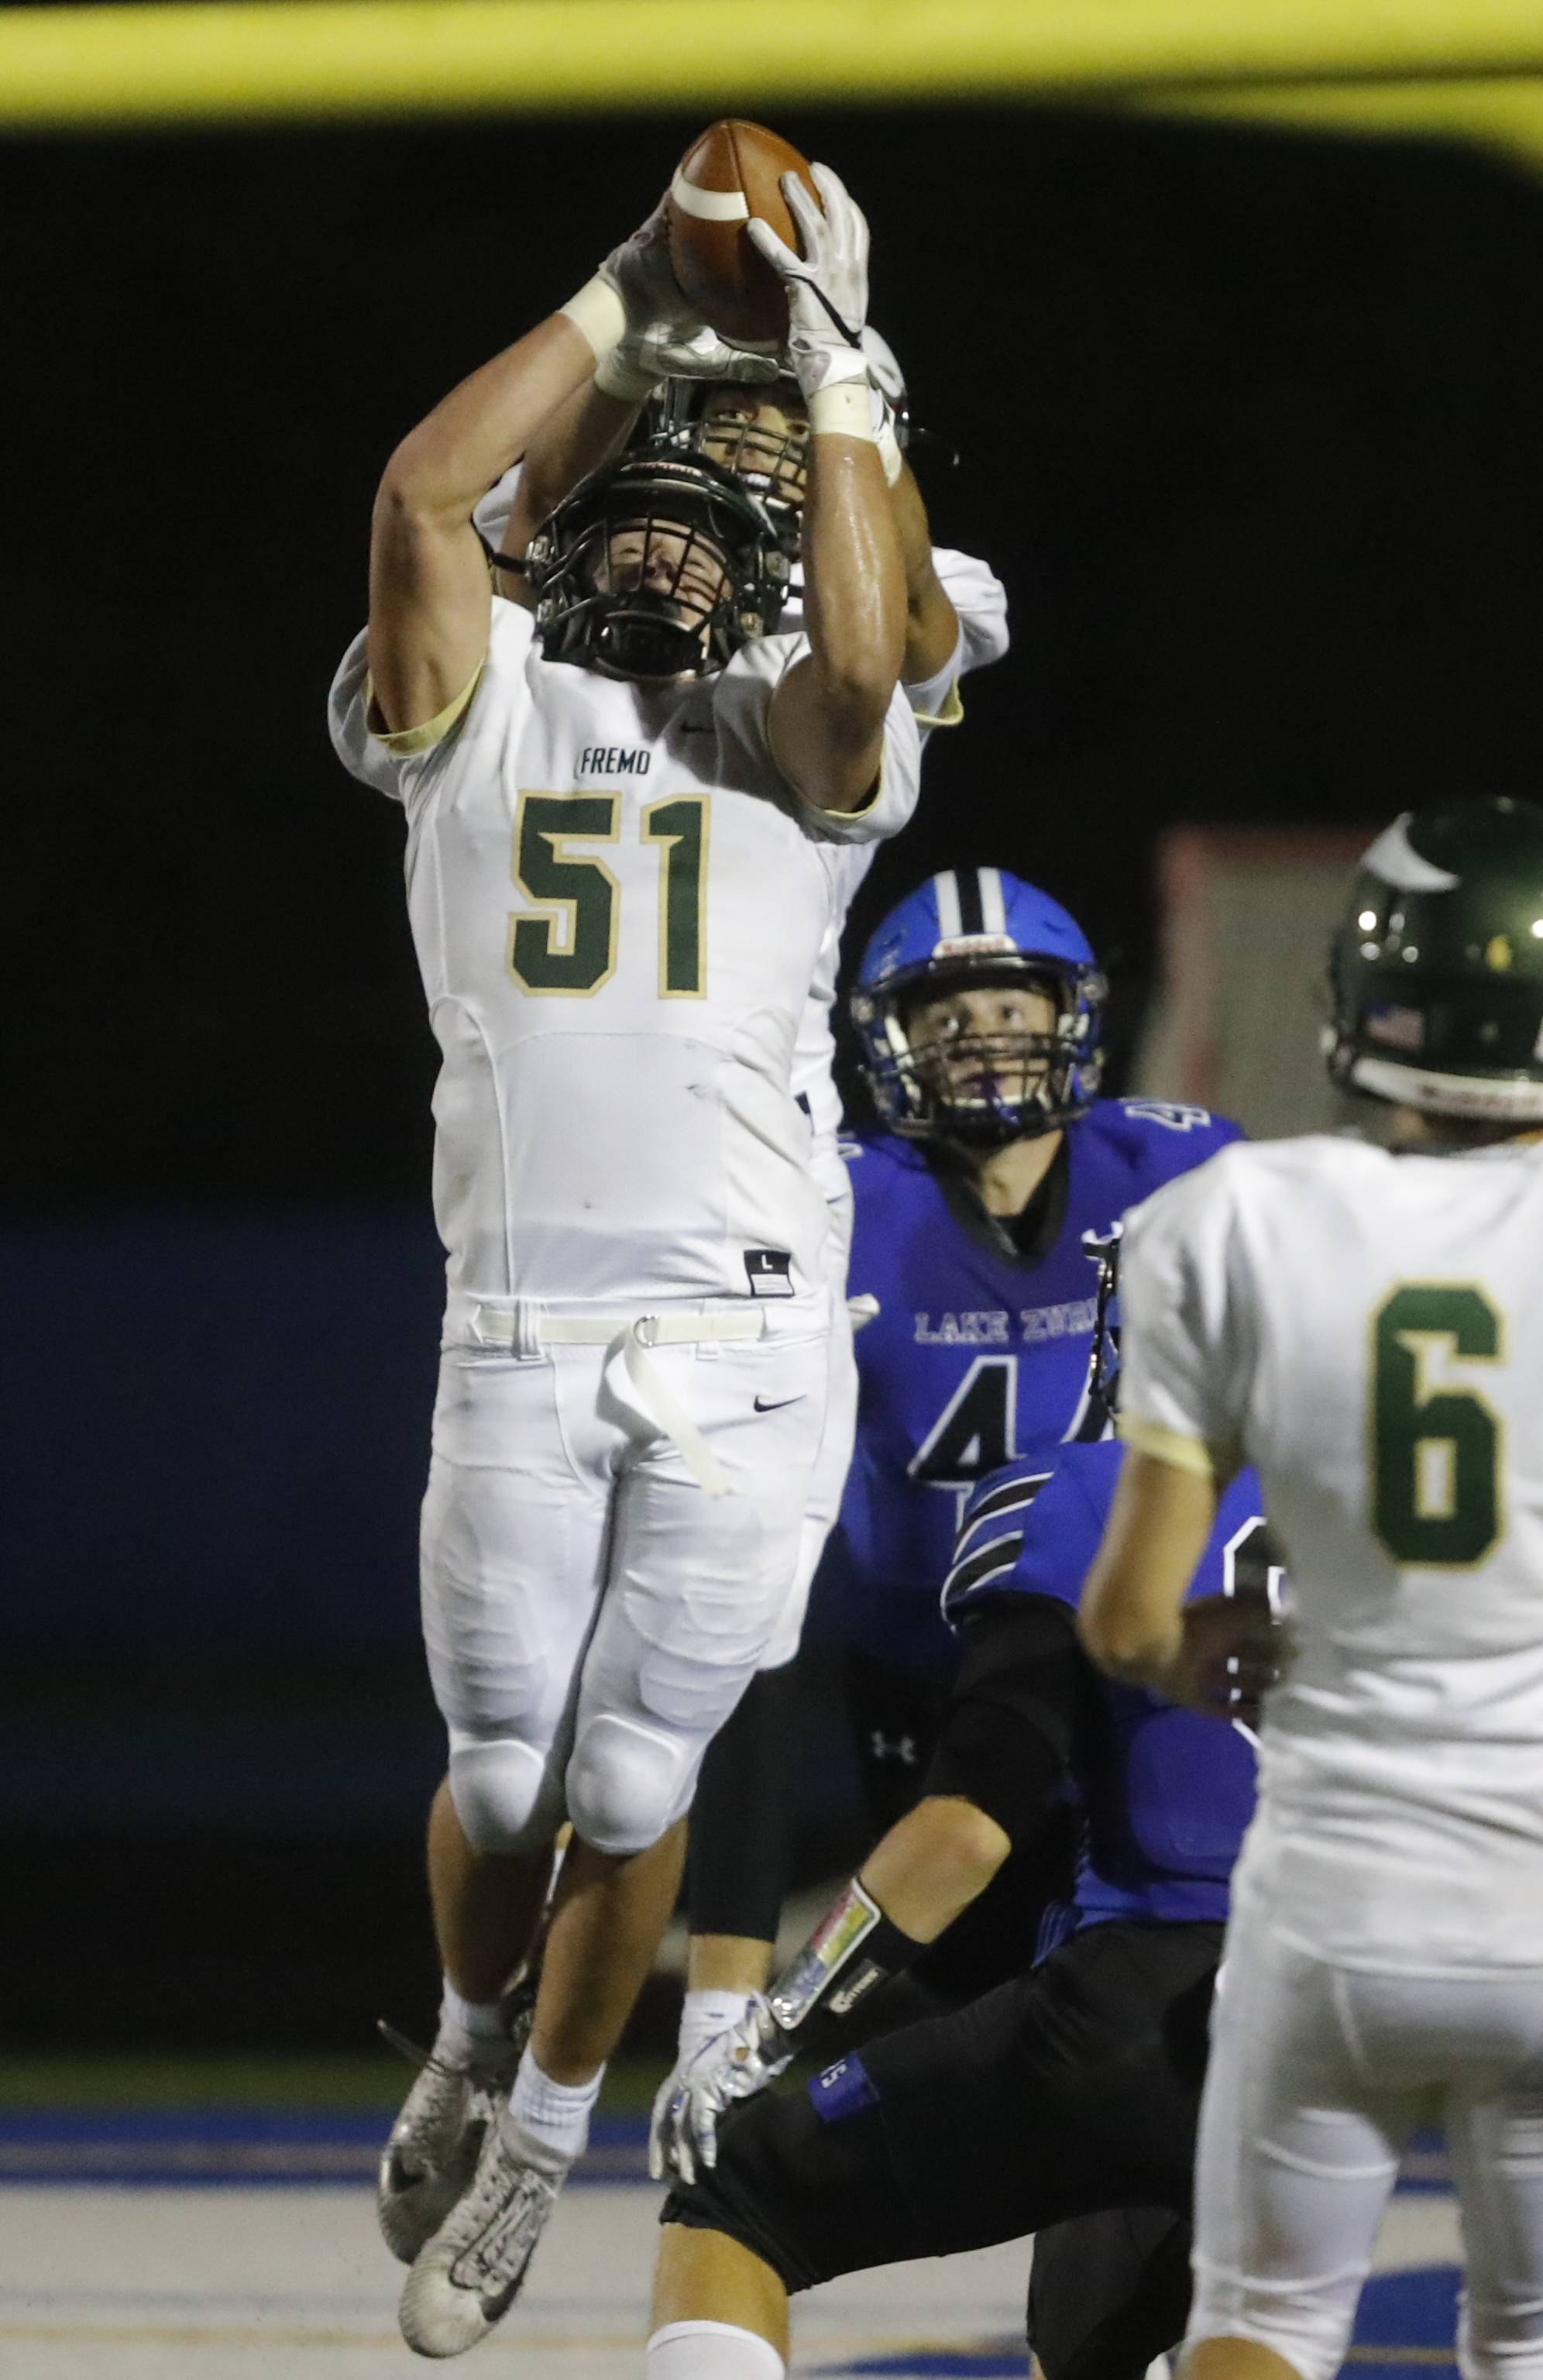 Fremd's Luke Bilek (51) makes an interception against Lake Zurich earlier this season. Fremd plays at Hoffman Estates Friday night.